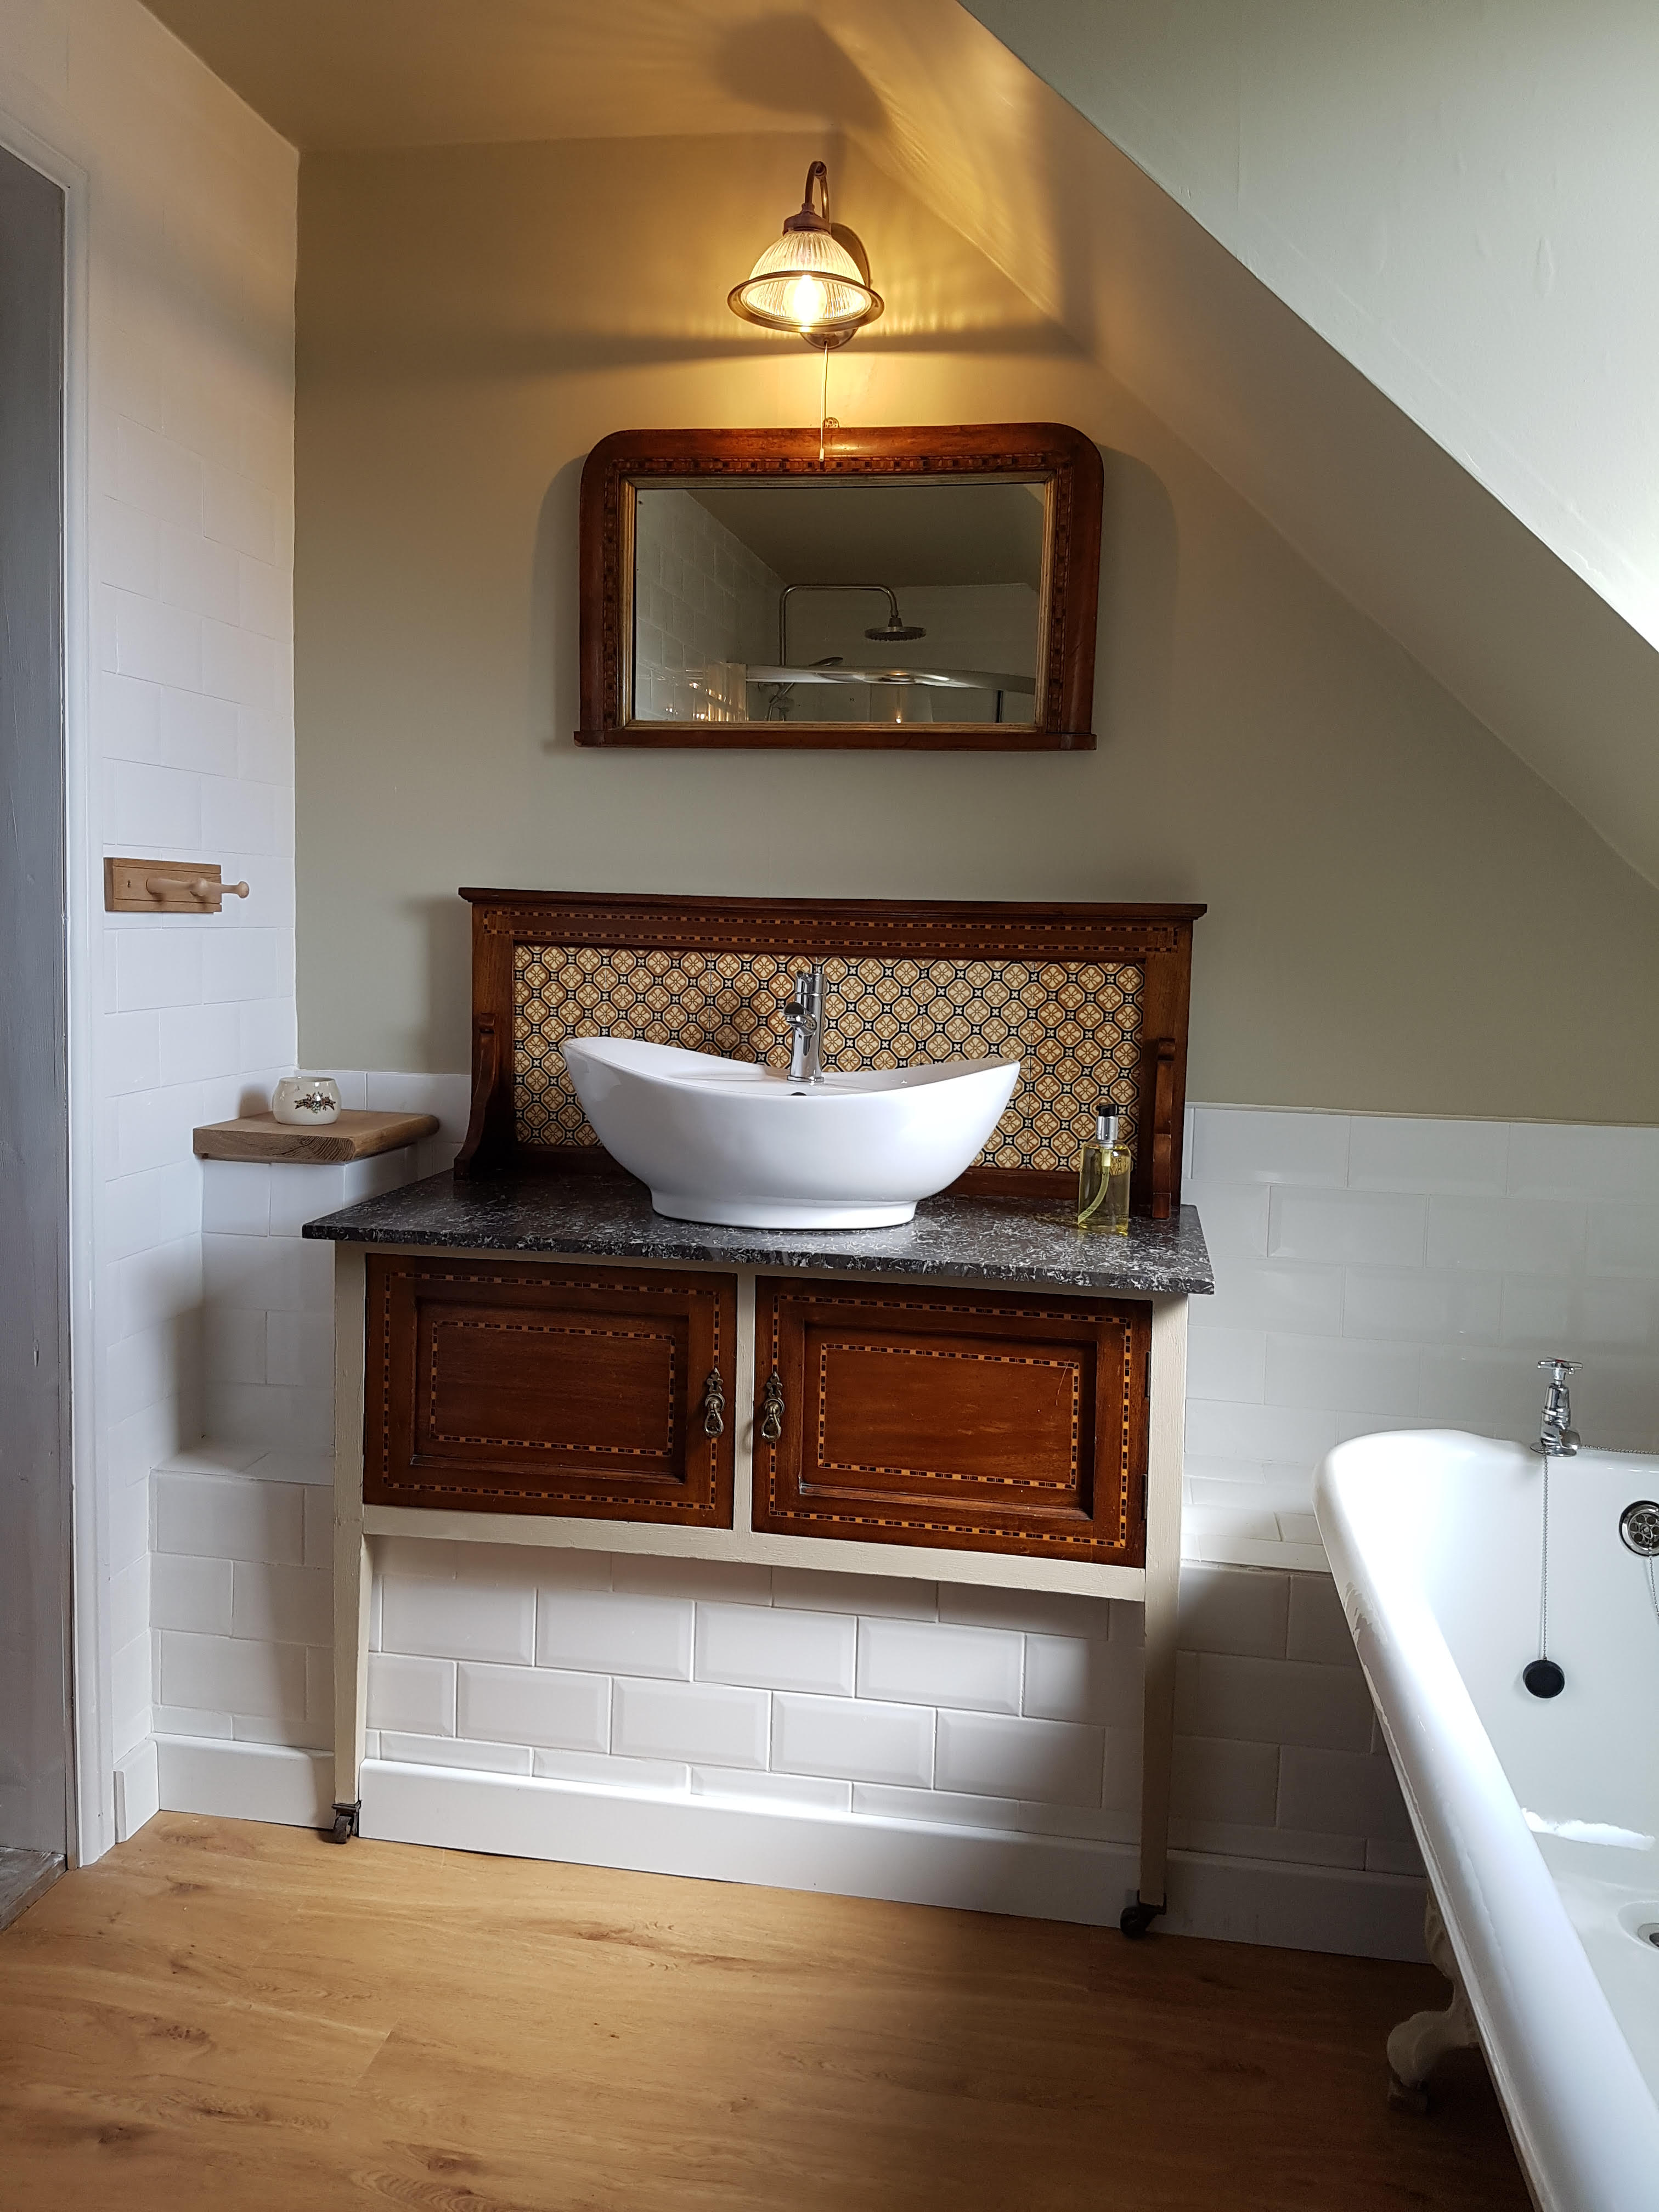 Sealoch Bathroom